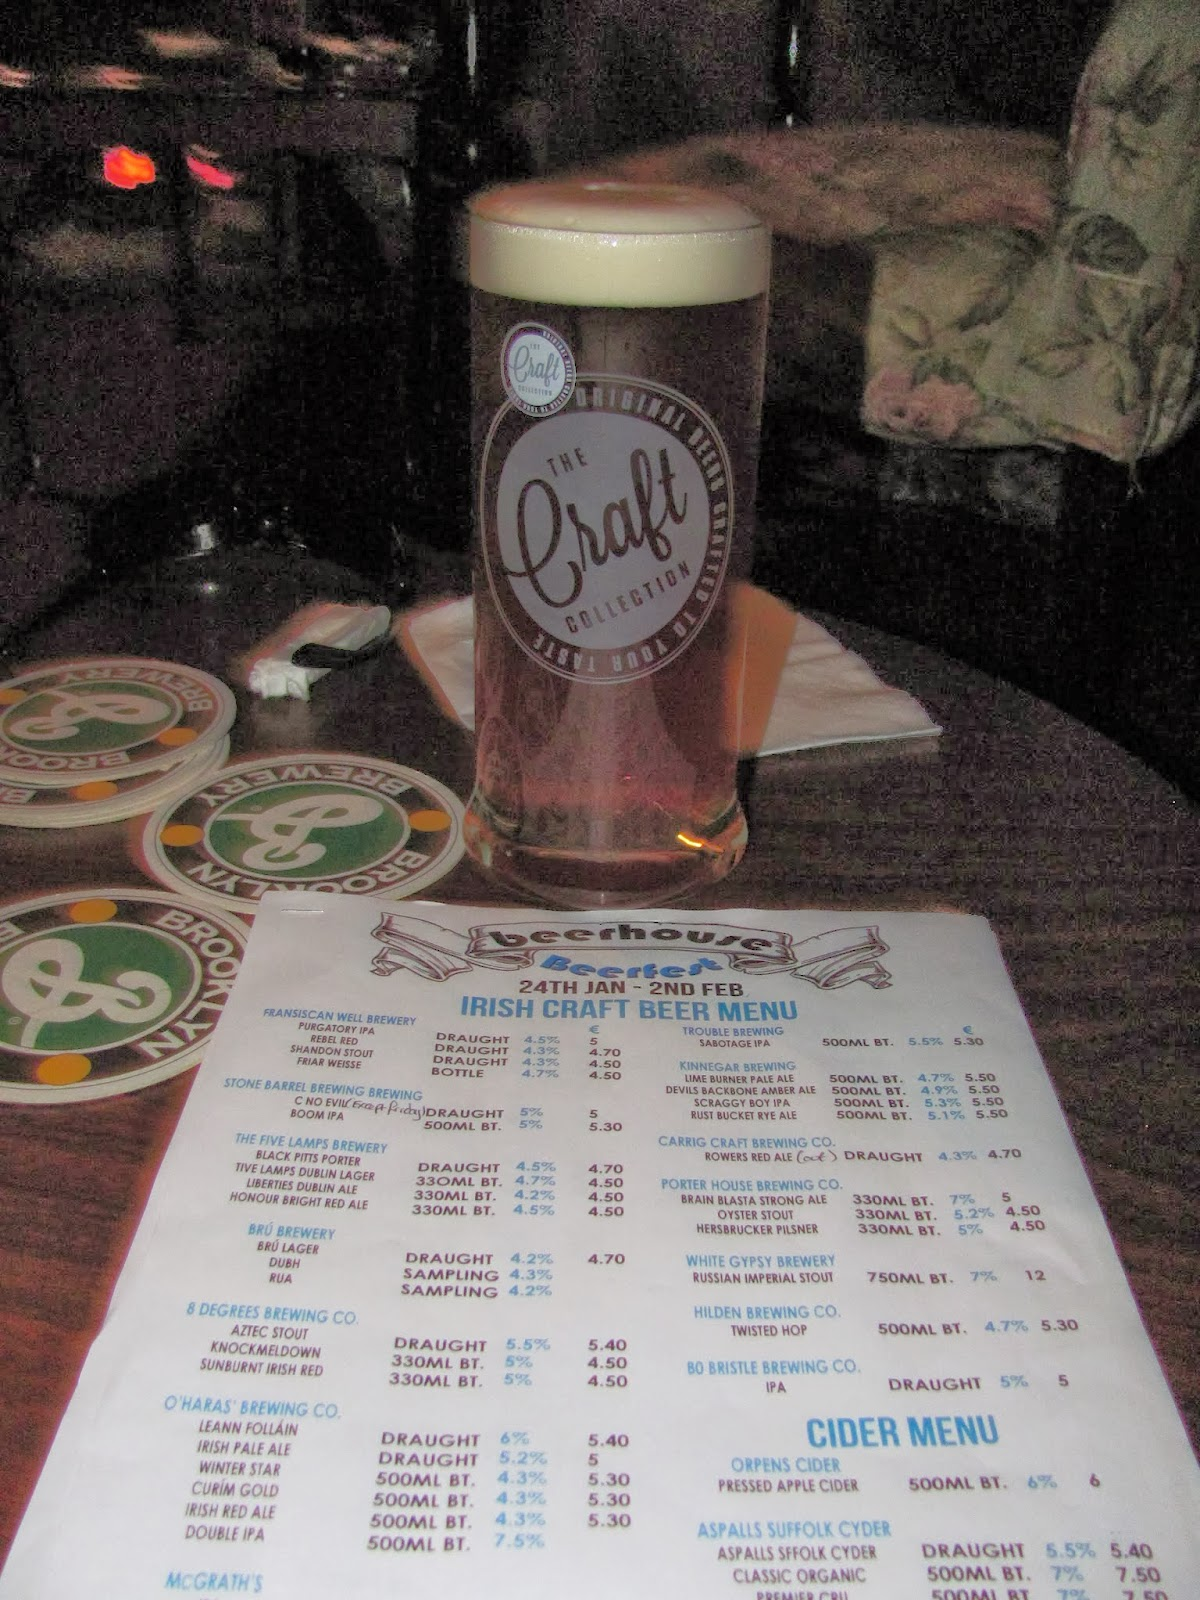 Beerhouse Menu in Dublin, Ireland